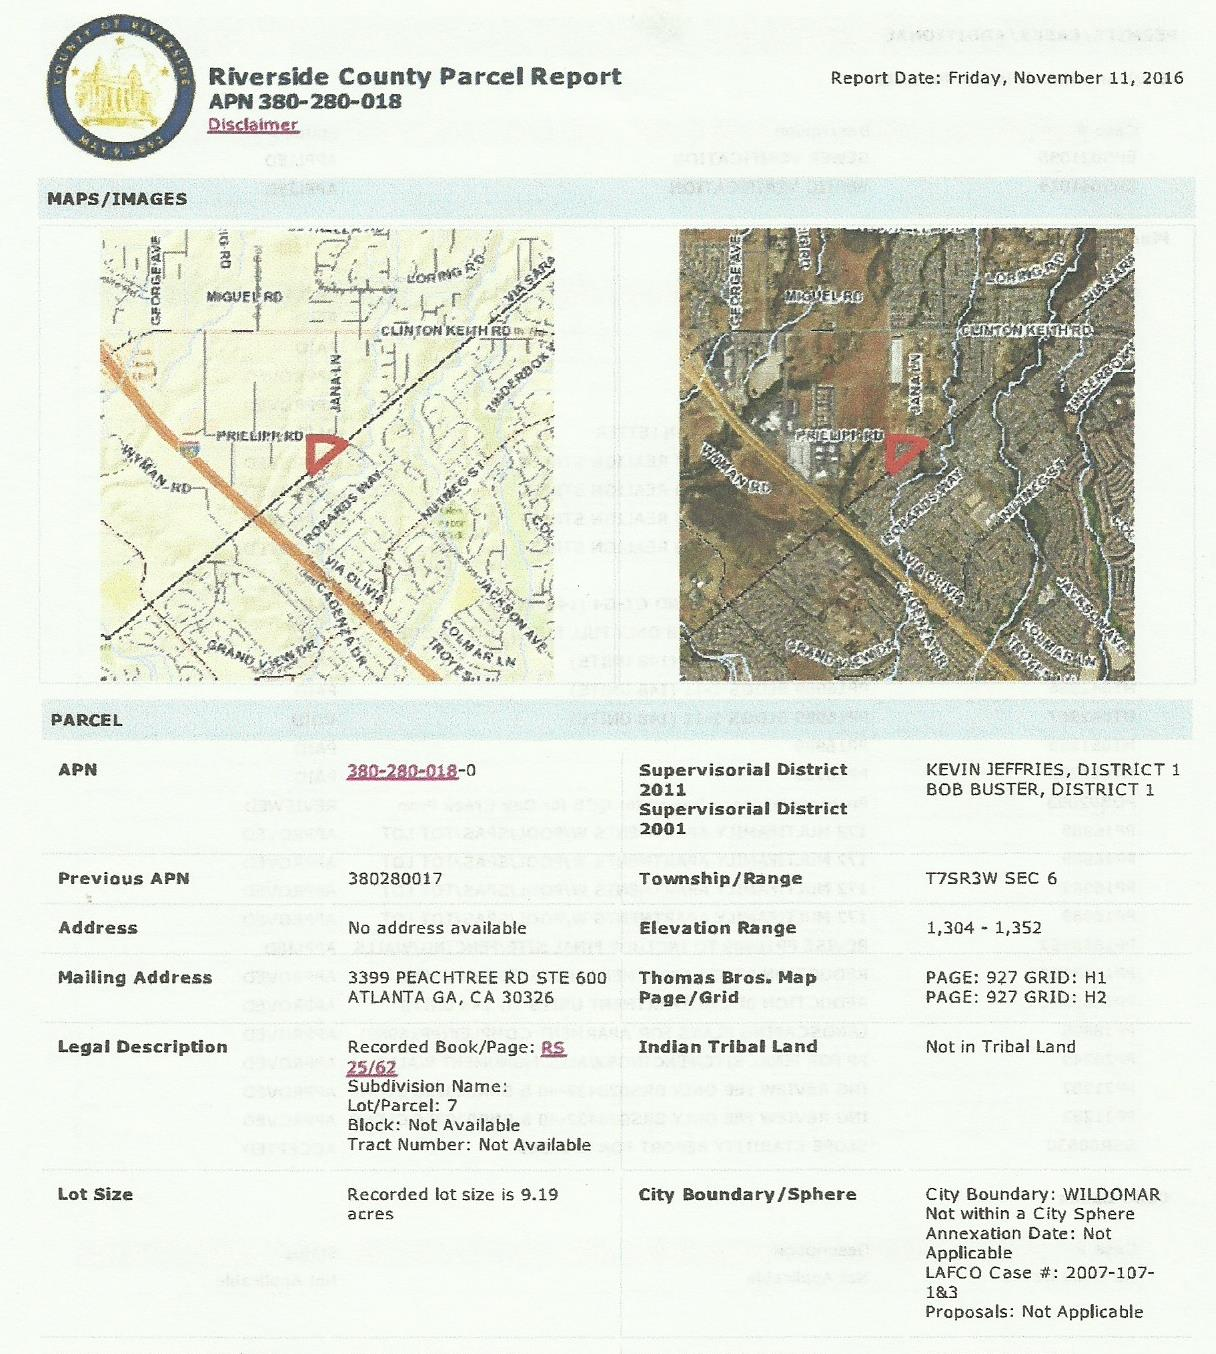 County of Riverside Geographic Information System (GIS) Assessor's Parcel Number Report (APN)